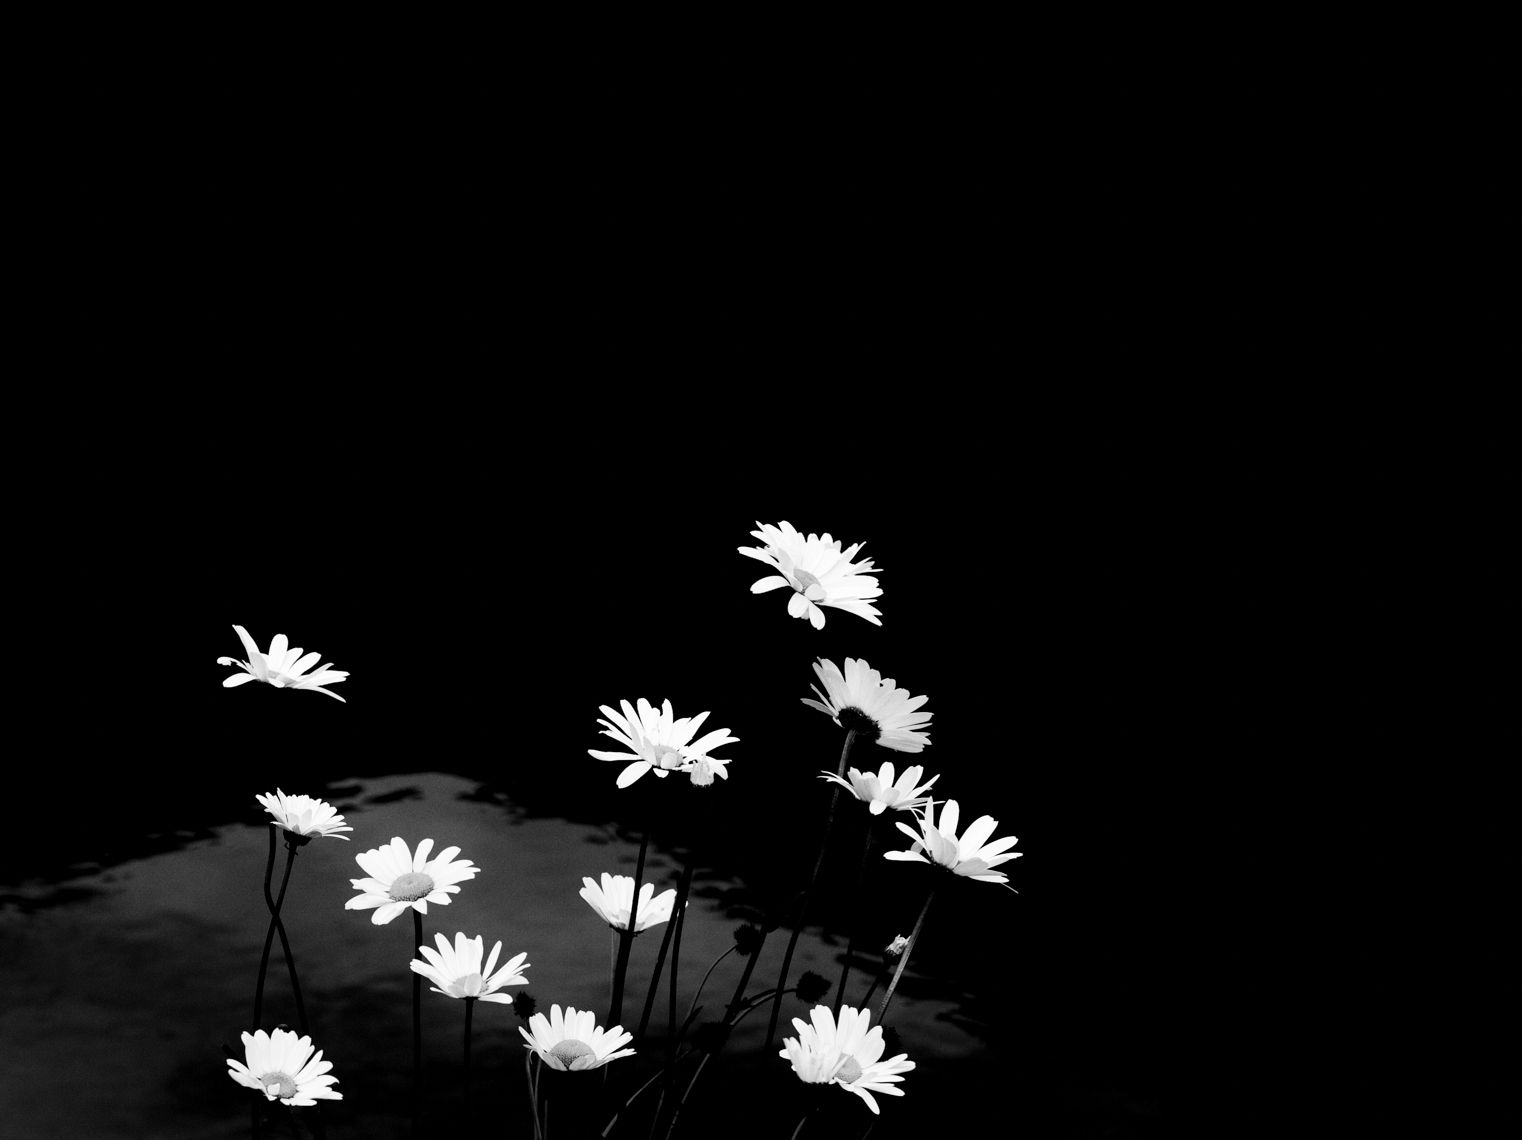 Black And White Image Of Flowers | Tosca Radigonda Photography